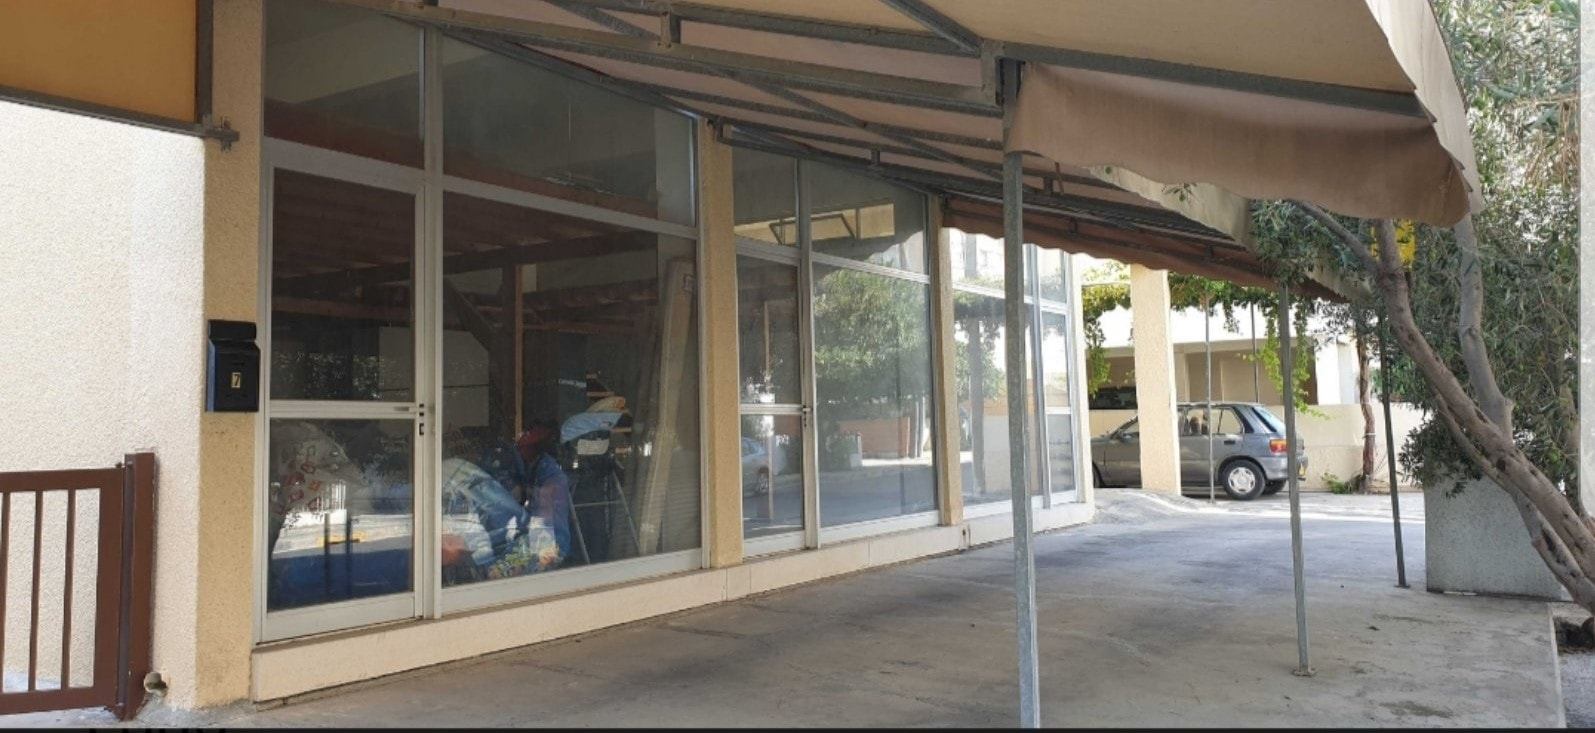 Shop or Office in Strovolos Nicosia, CYPRUS